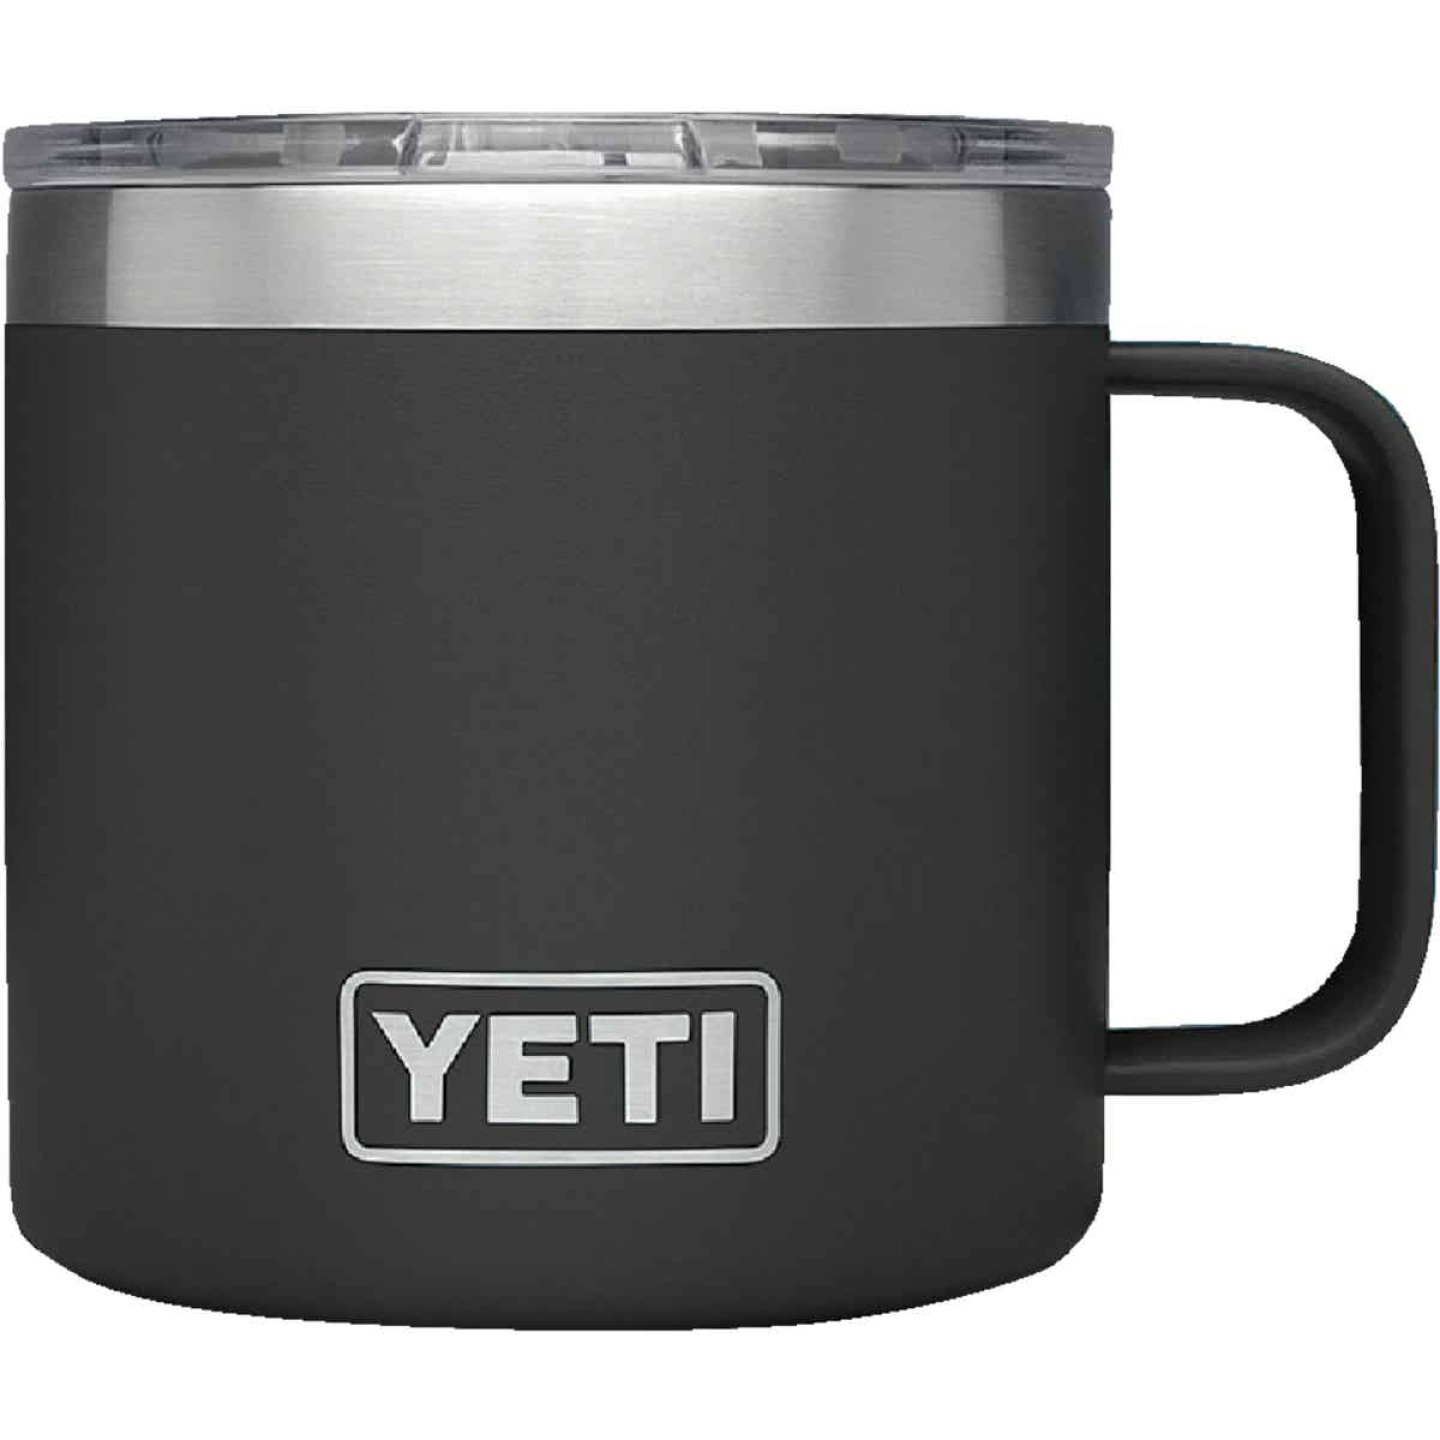 Yeti Rambler 14 Oz. Black Stainless Steel Insulated Mug Image 2